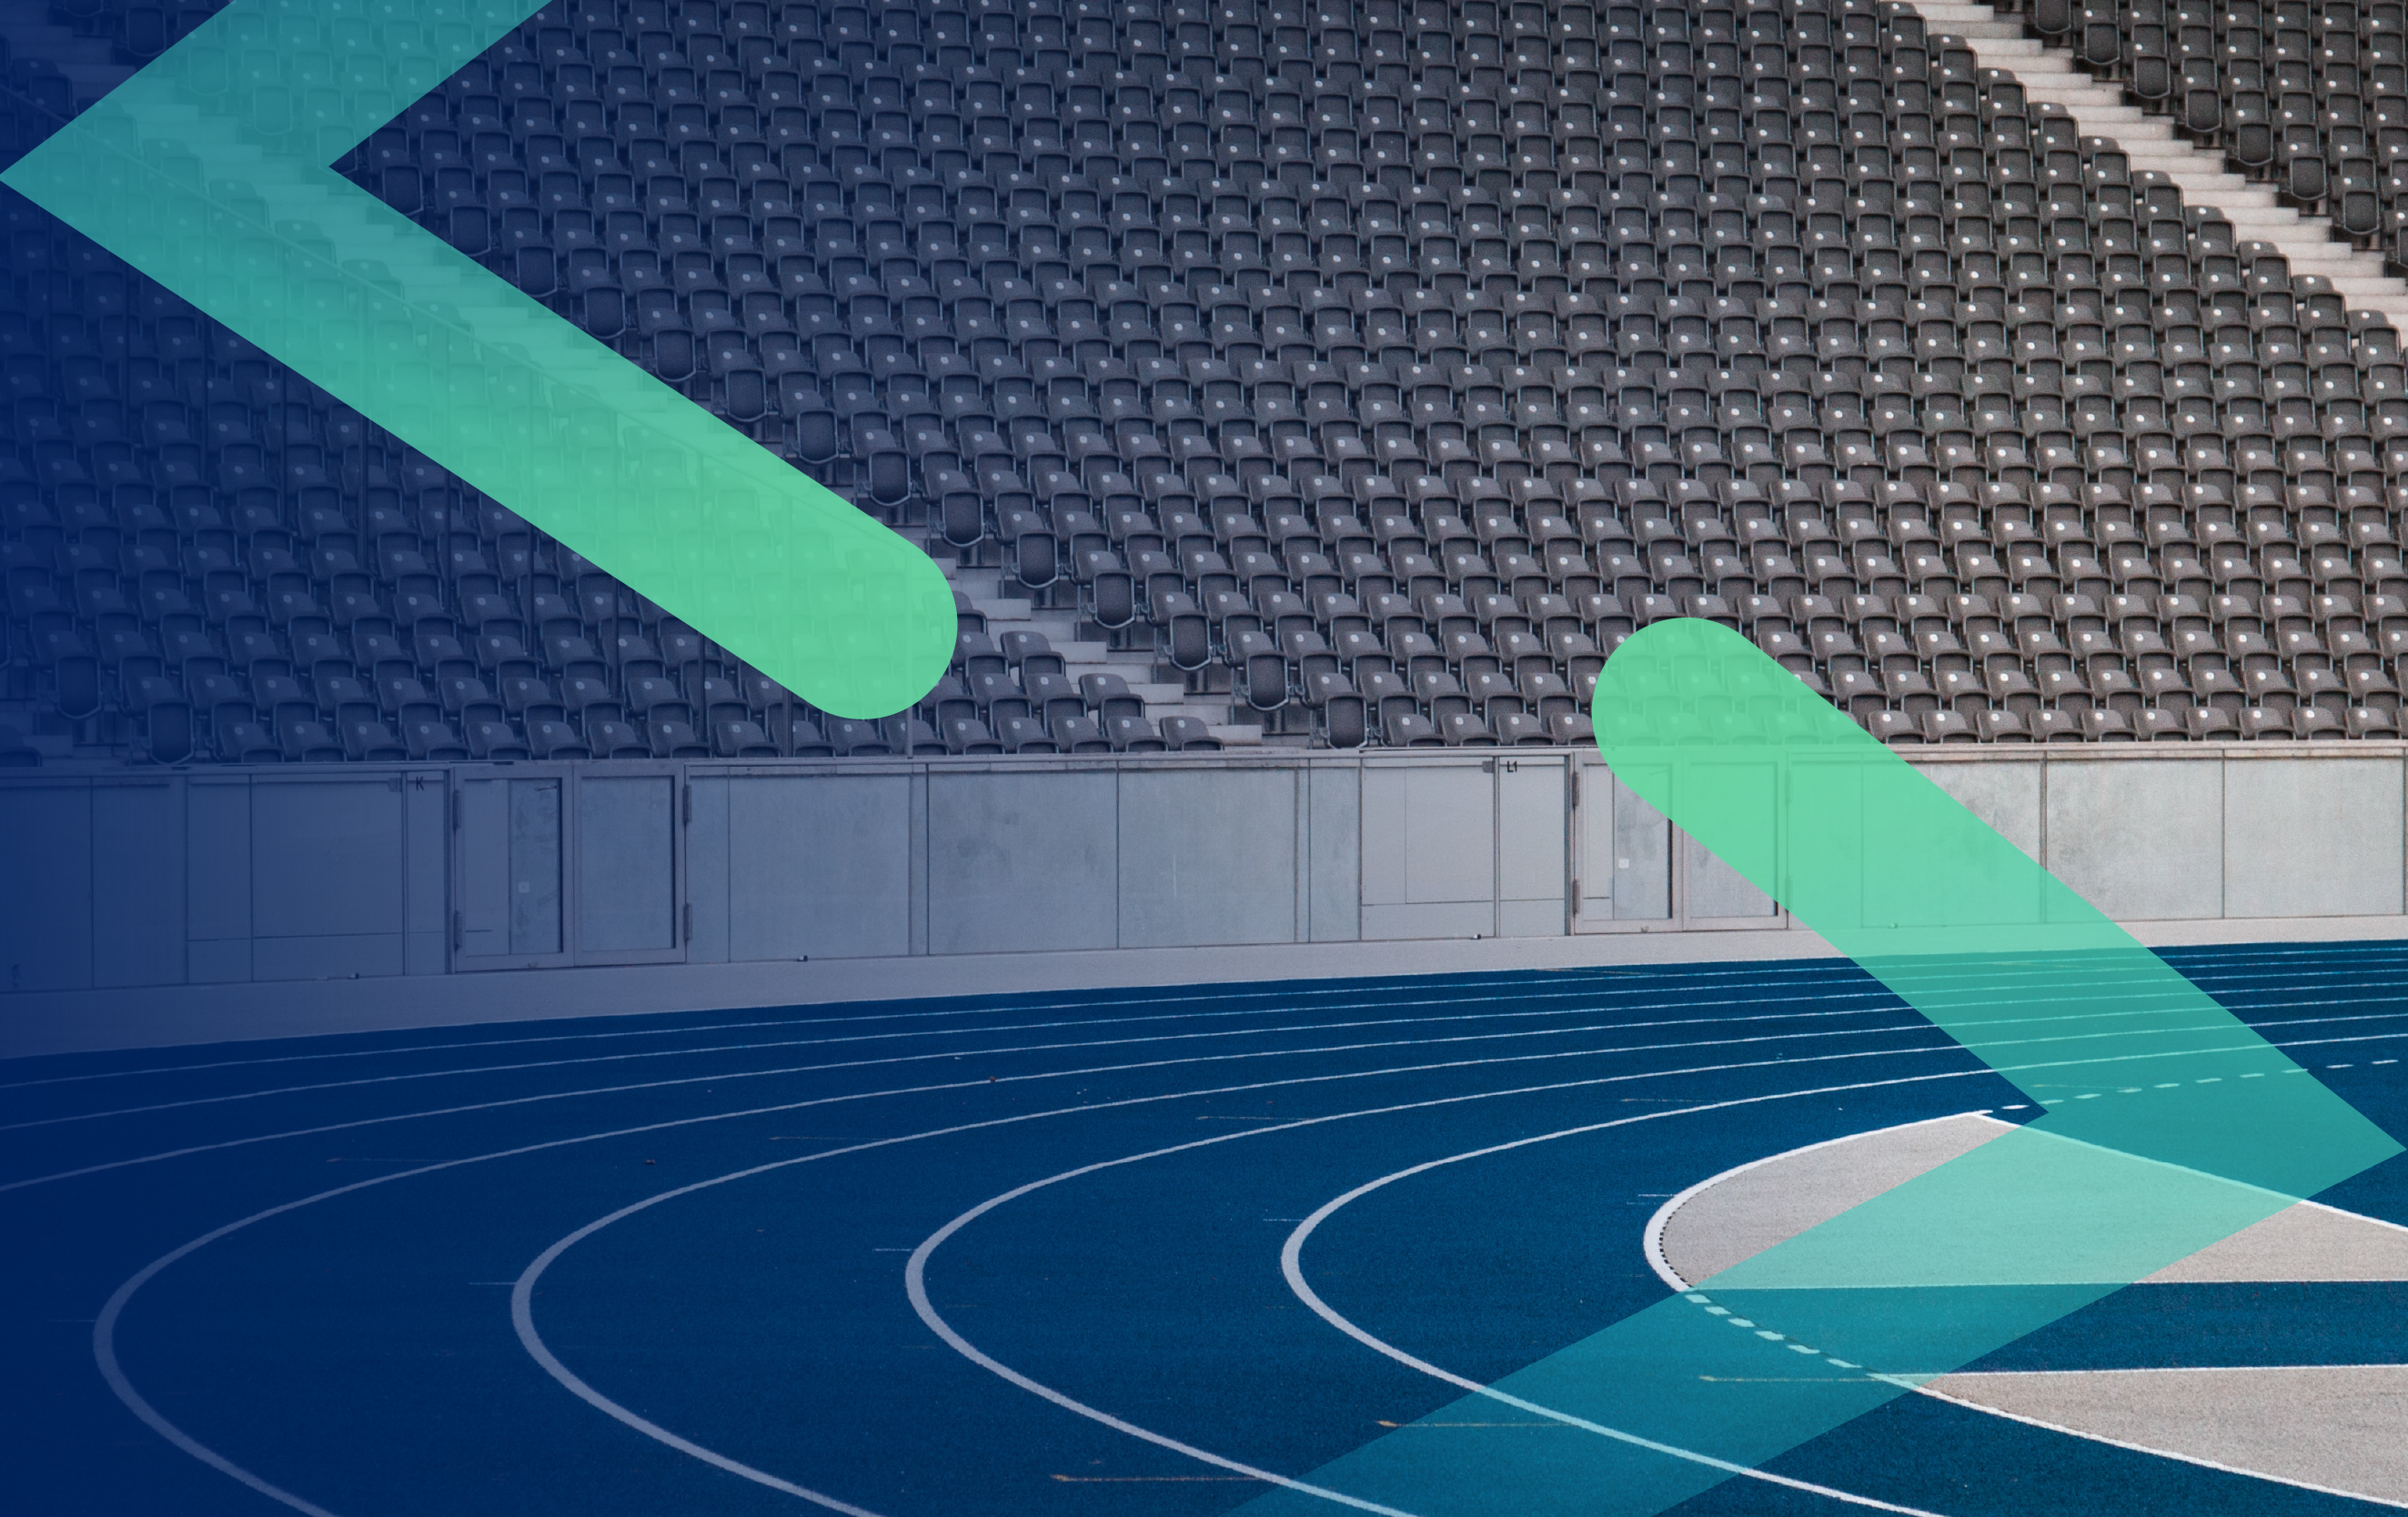 Using Ad Insights to measure Emotional Branding during Tokyo Olympics